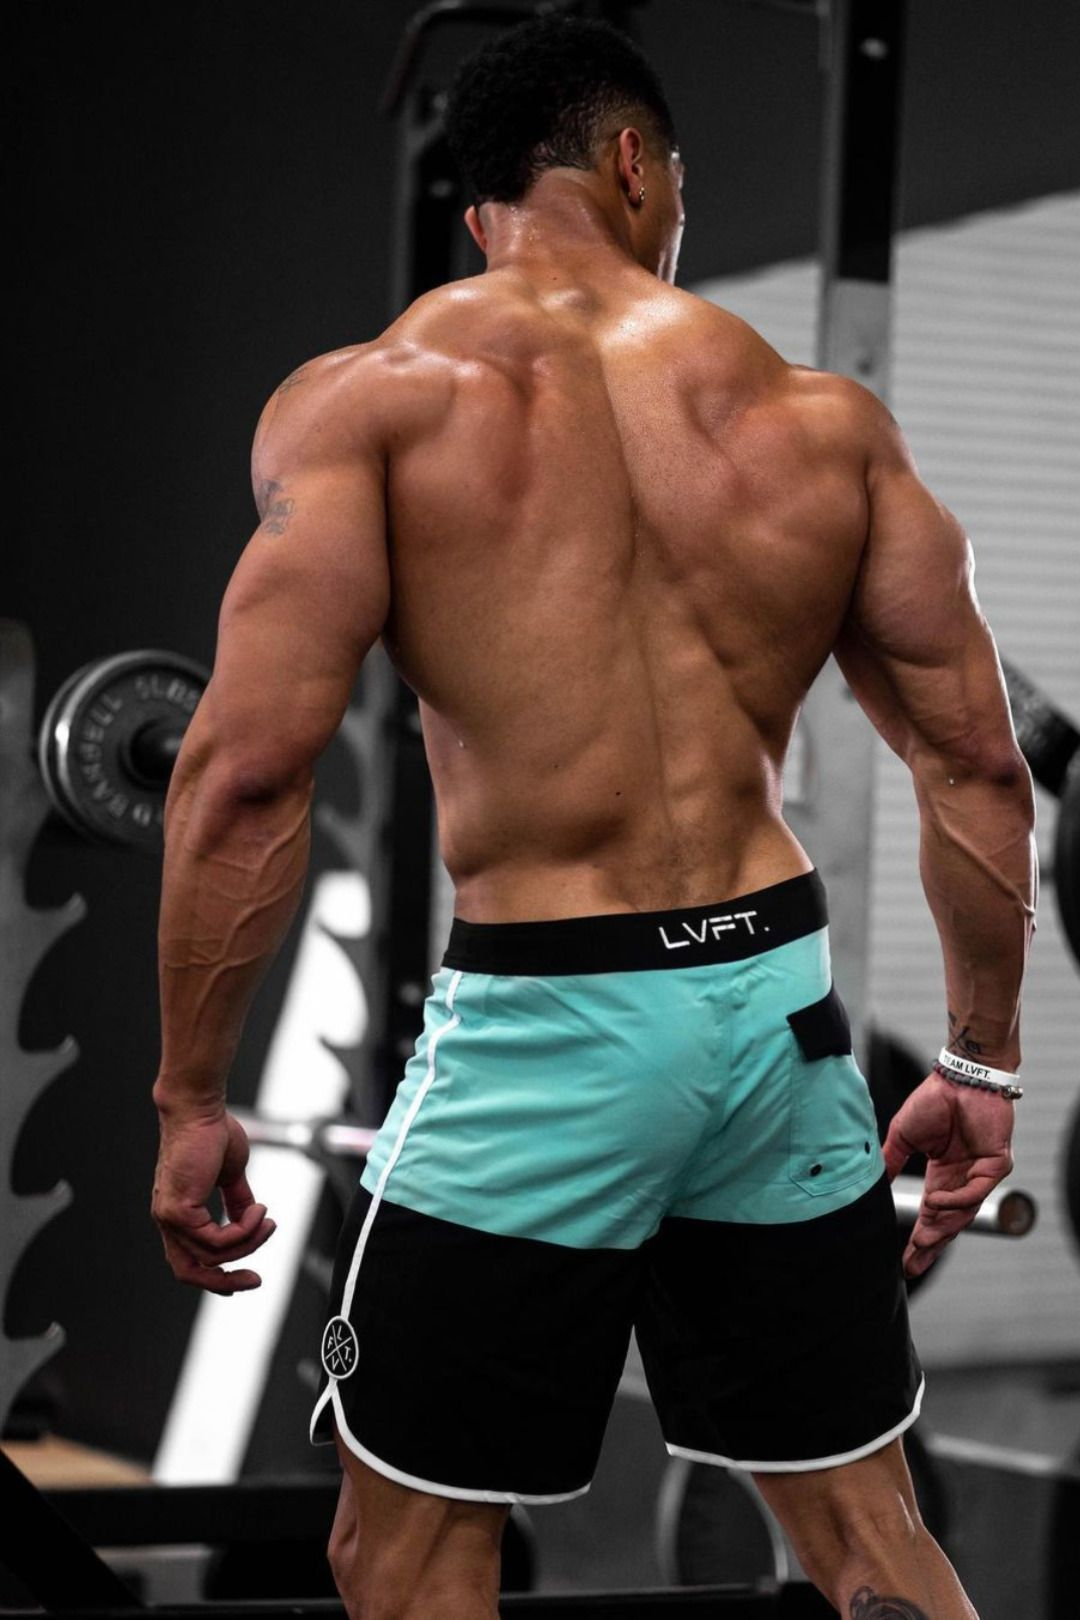 Custom fit Men/'s Physique Shorts tailor made Mens Physique BoardShorts Competition Shorts Men\u2019s physique posing shorts